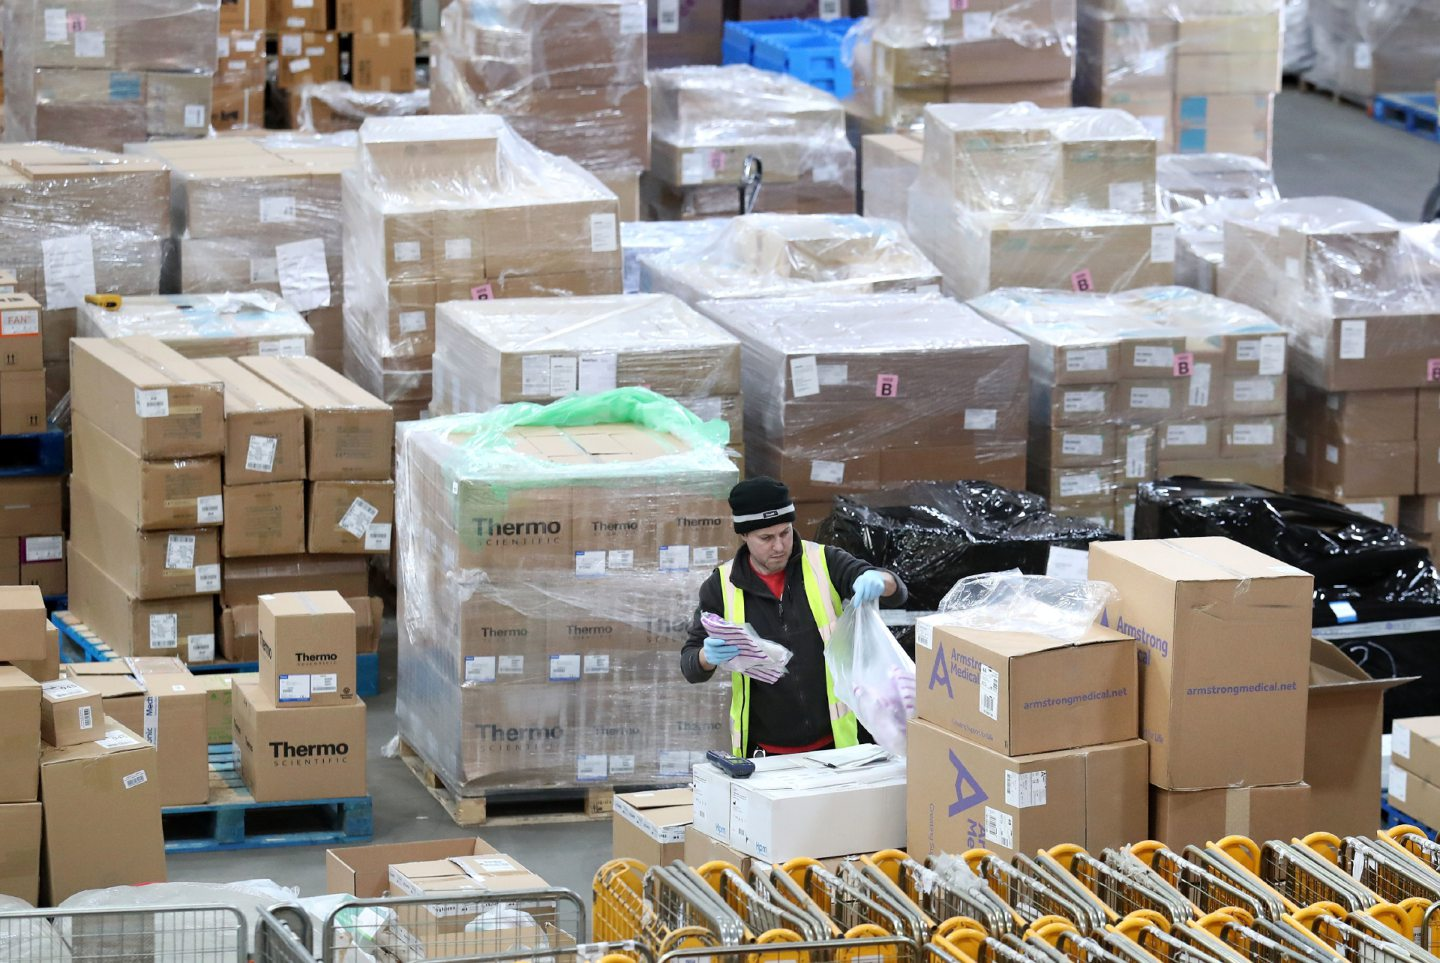 A worker gathers supplies at the NHS' national procurement warehouse at Canderside, Larkhall.